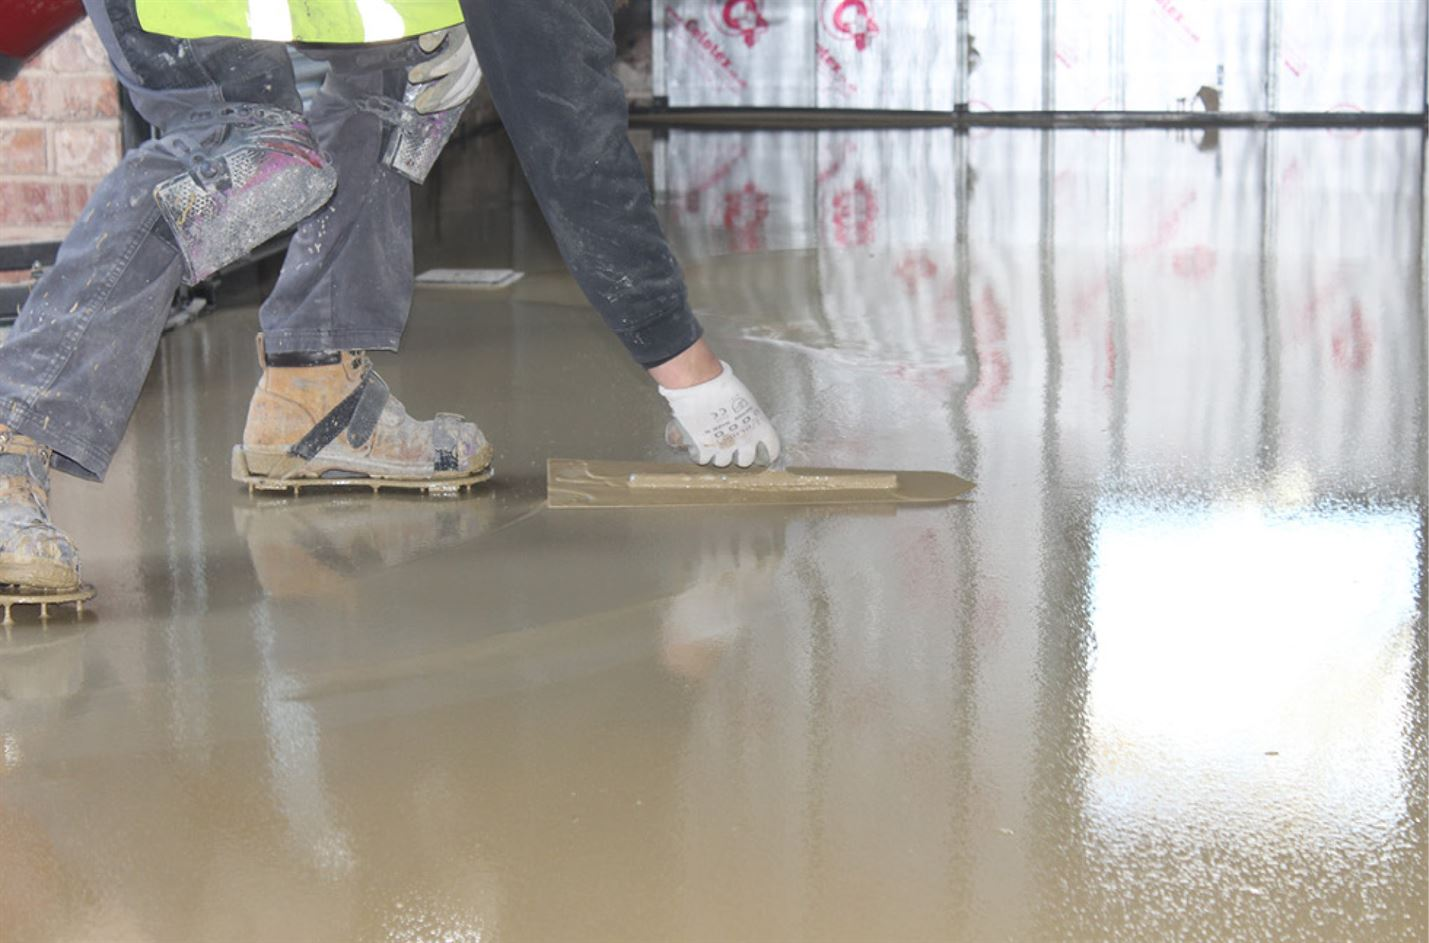 Self Levelling Compound Concrete Screed being laid by worker - UK Supplier